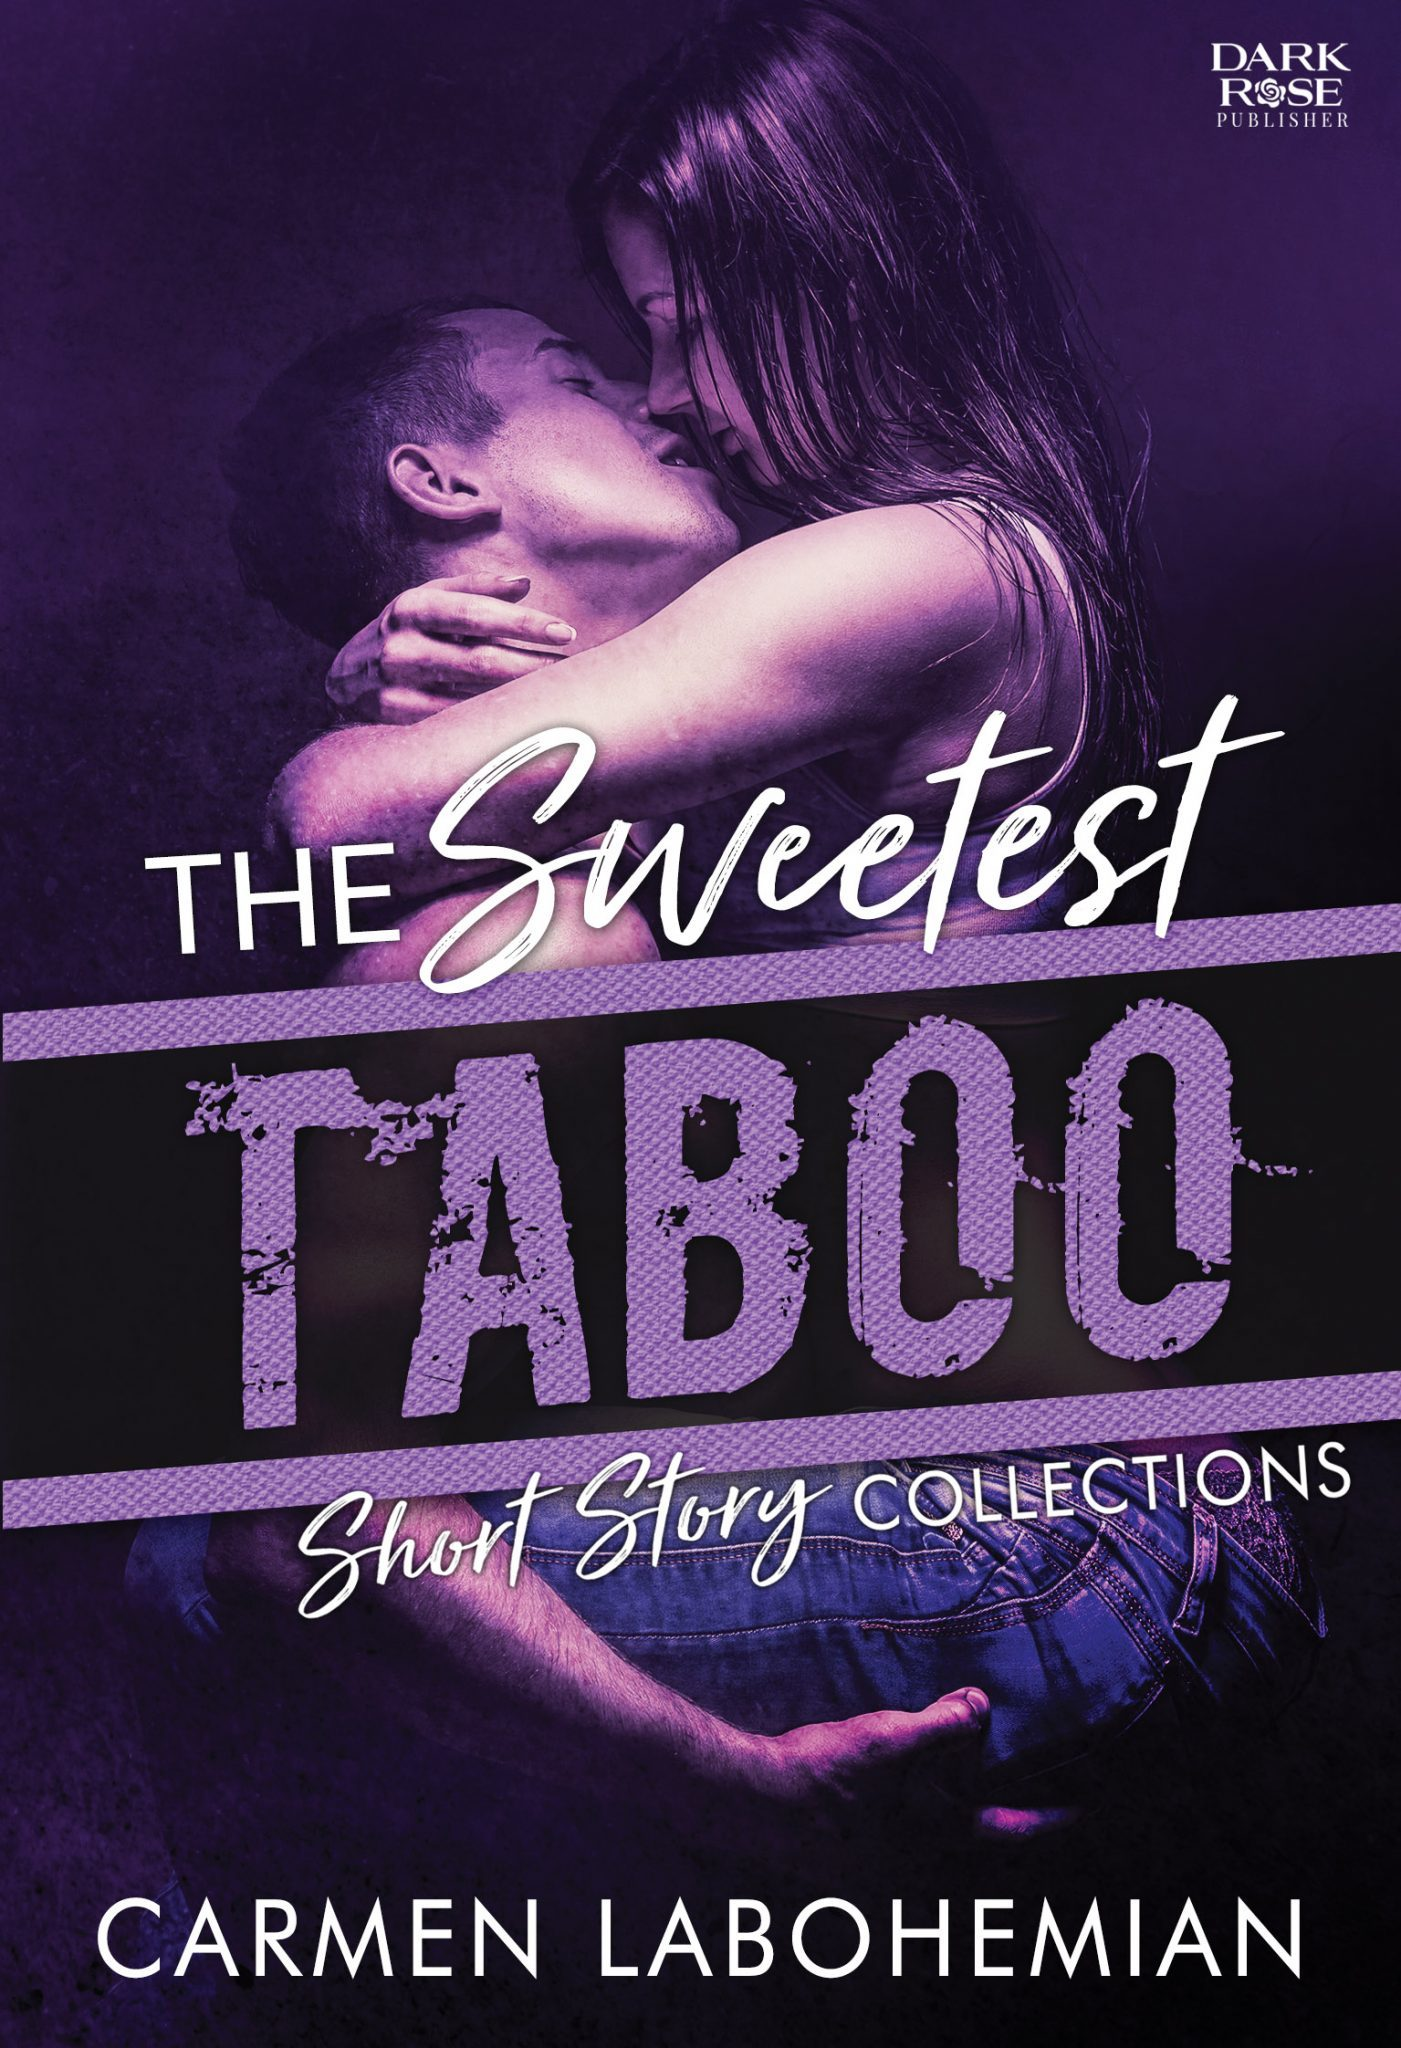 The Sweetest Taboo – Short Story Collections